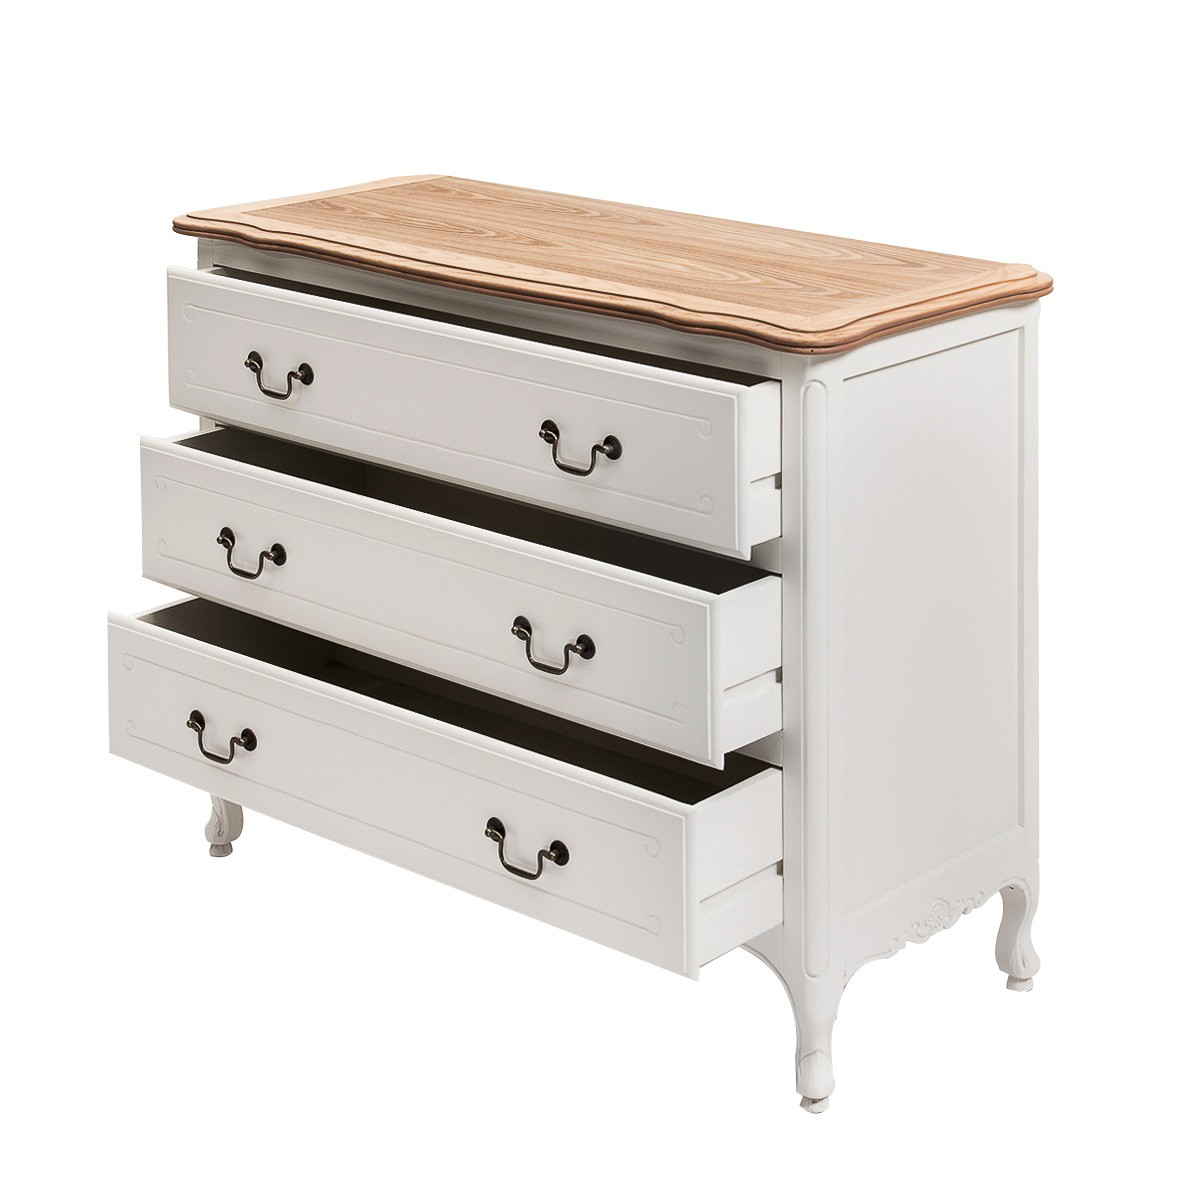 French Provincial Furniture White 3 Drawers Chest With Oak Top Colours May Differ On Viewing Device All Rights Reserved